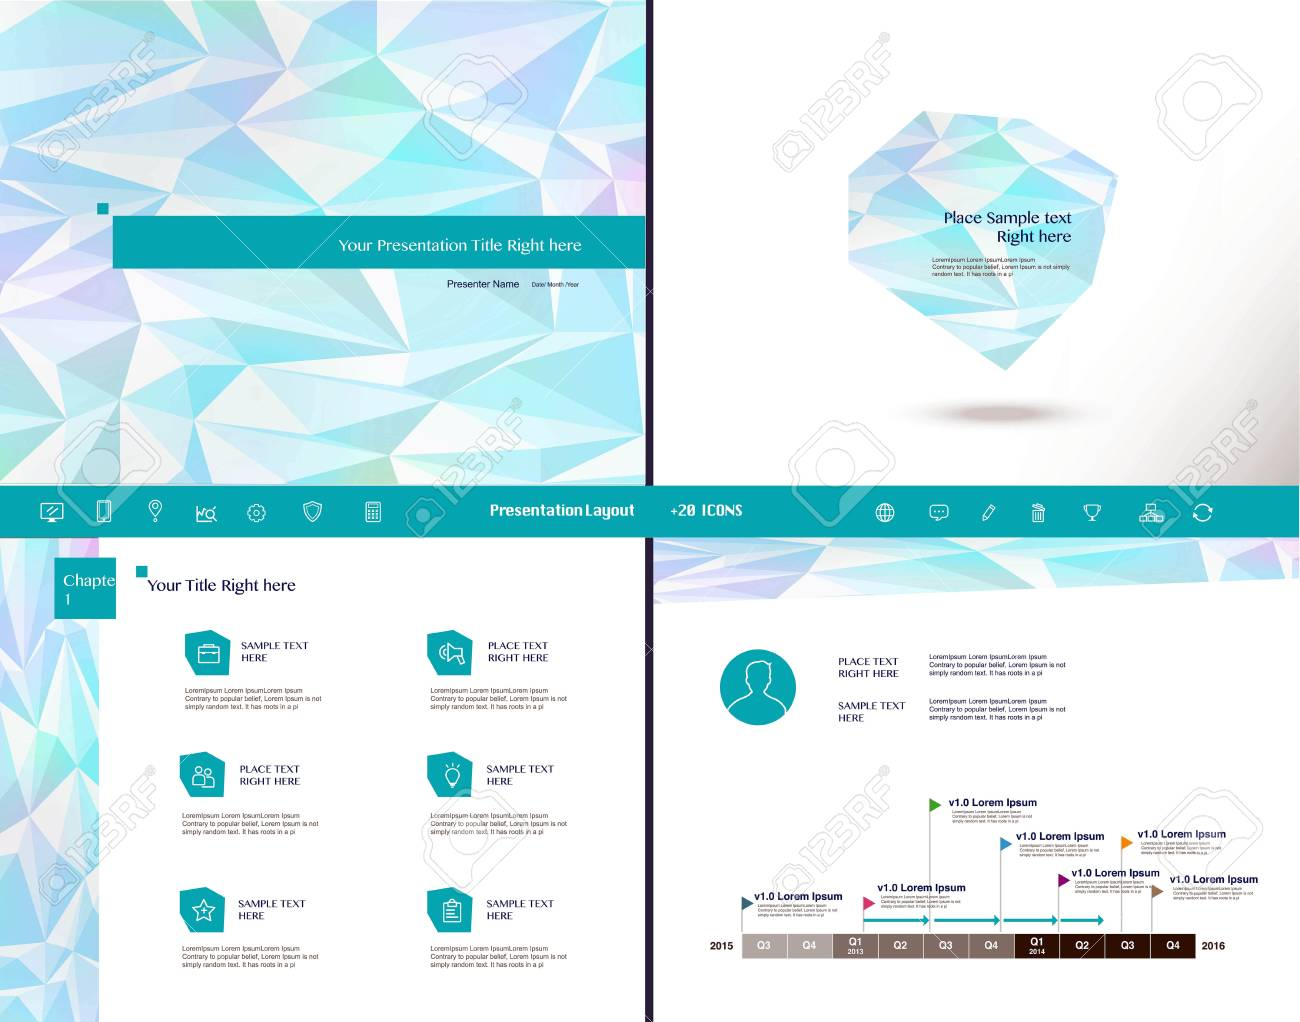 set of presentation template and 20 icons, business infographic, Low Poly Business Presentation Template, Presentation templates